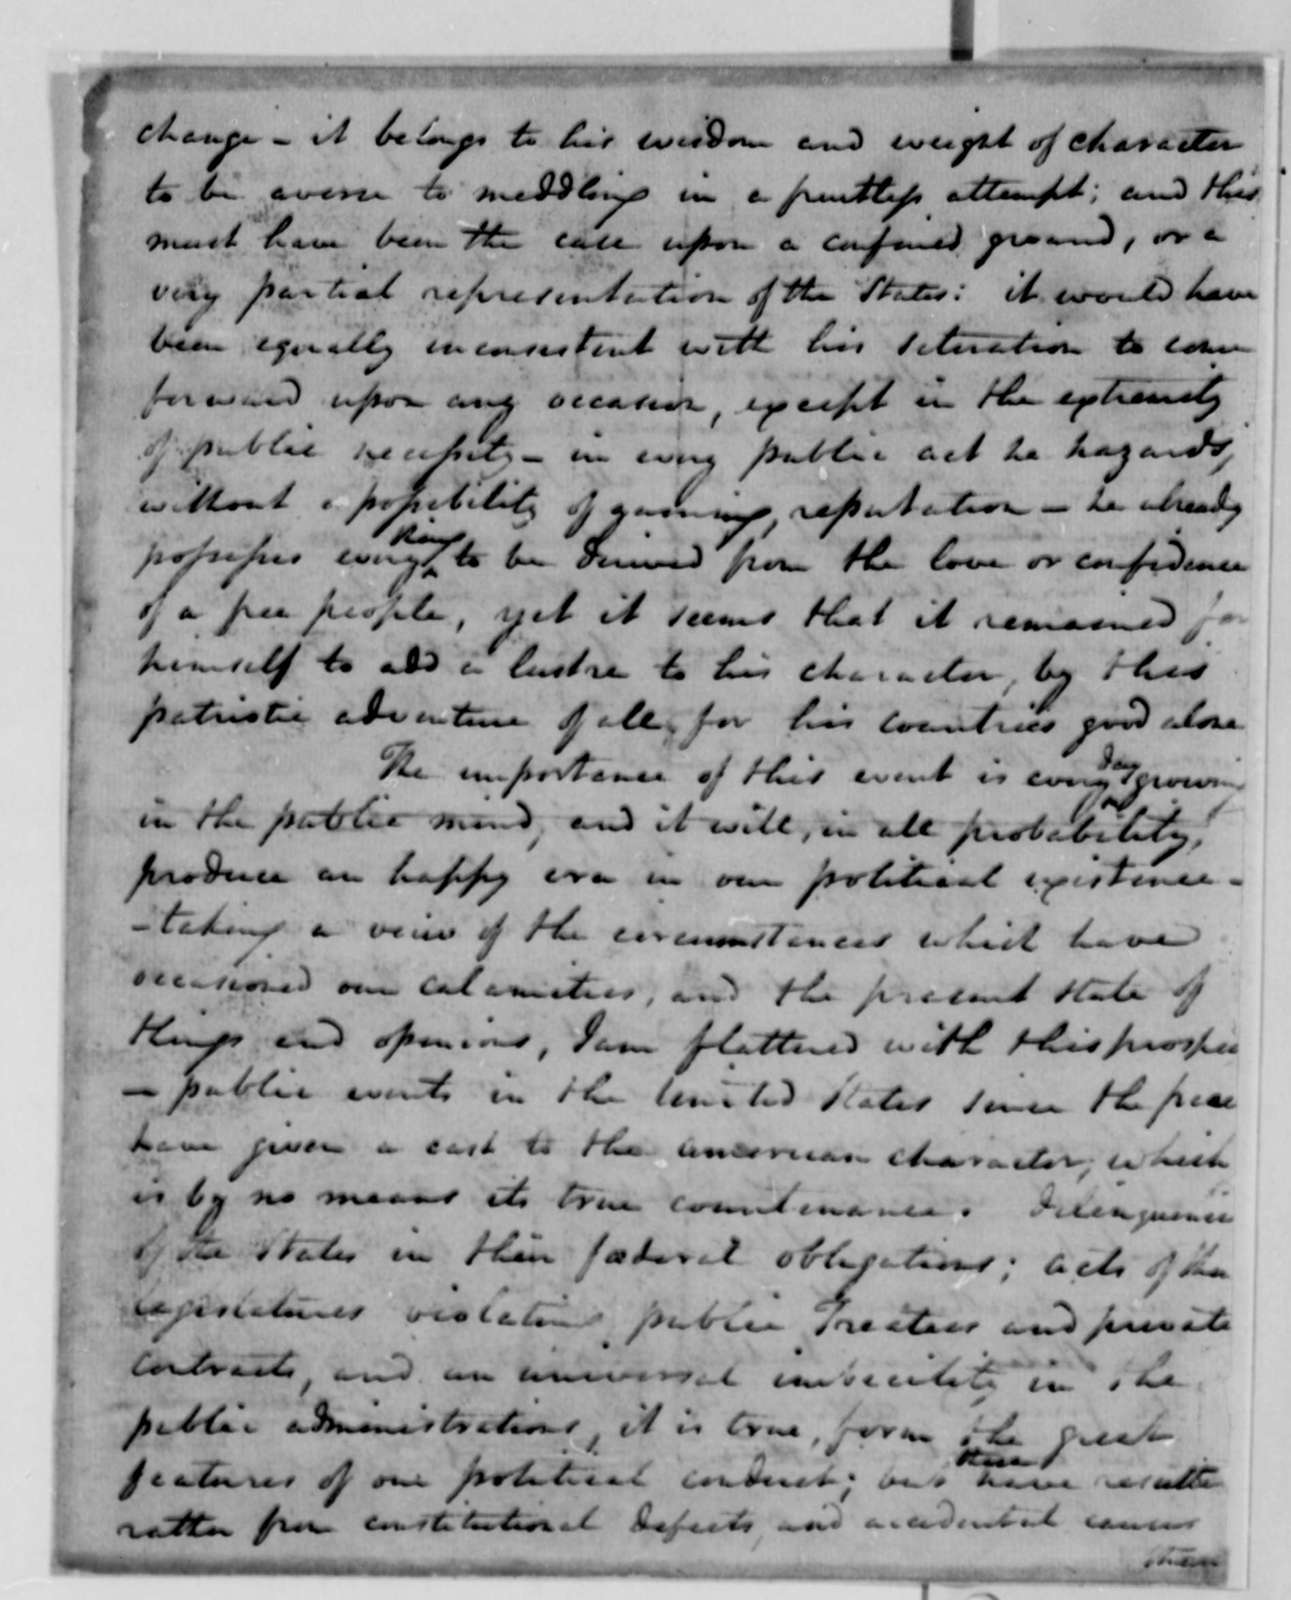 Edward Carrington to Thomas Jefferson, June 9, 1787